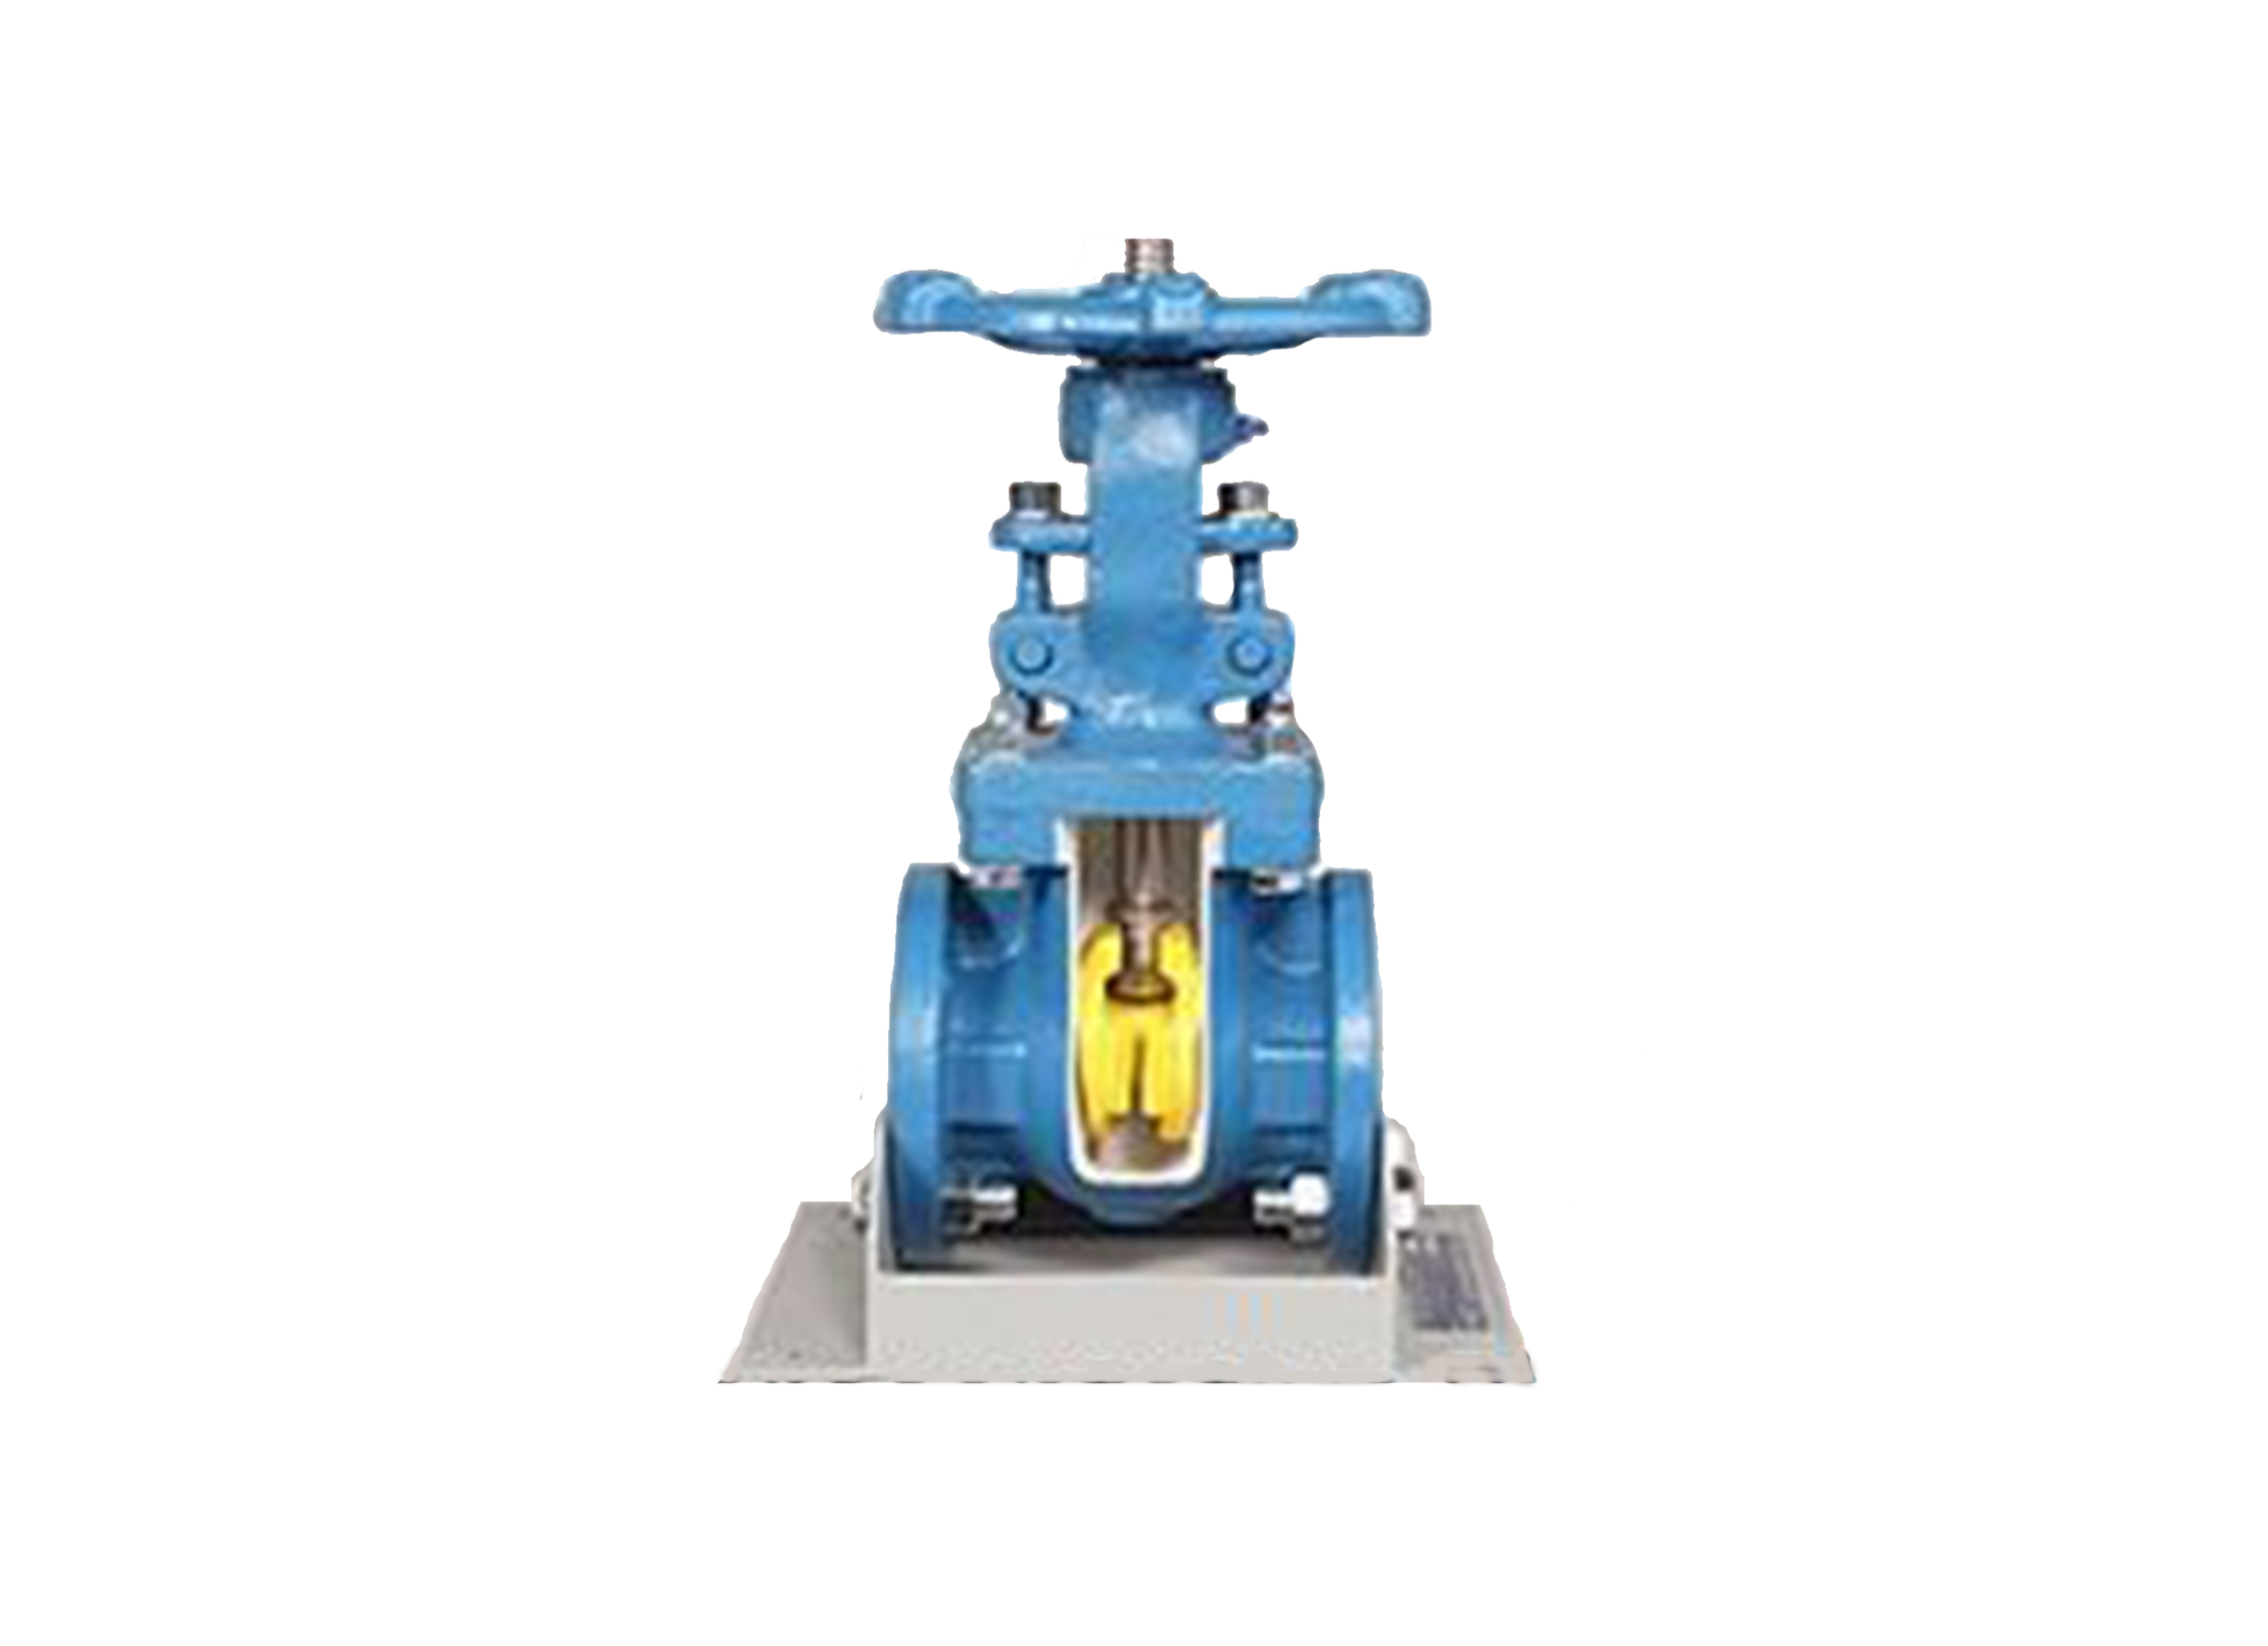 Gate Valve Dissectible Image